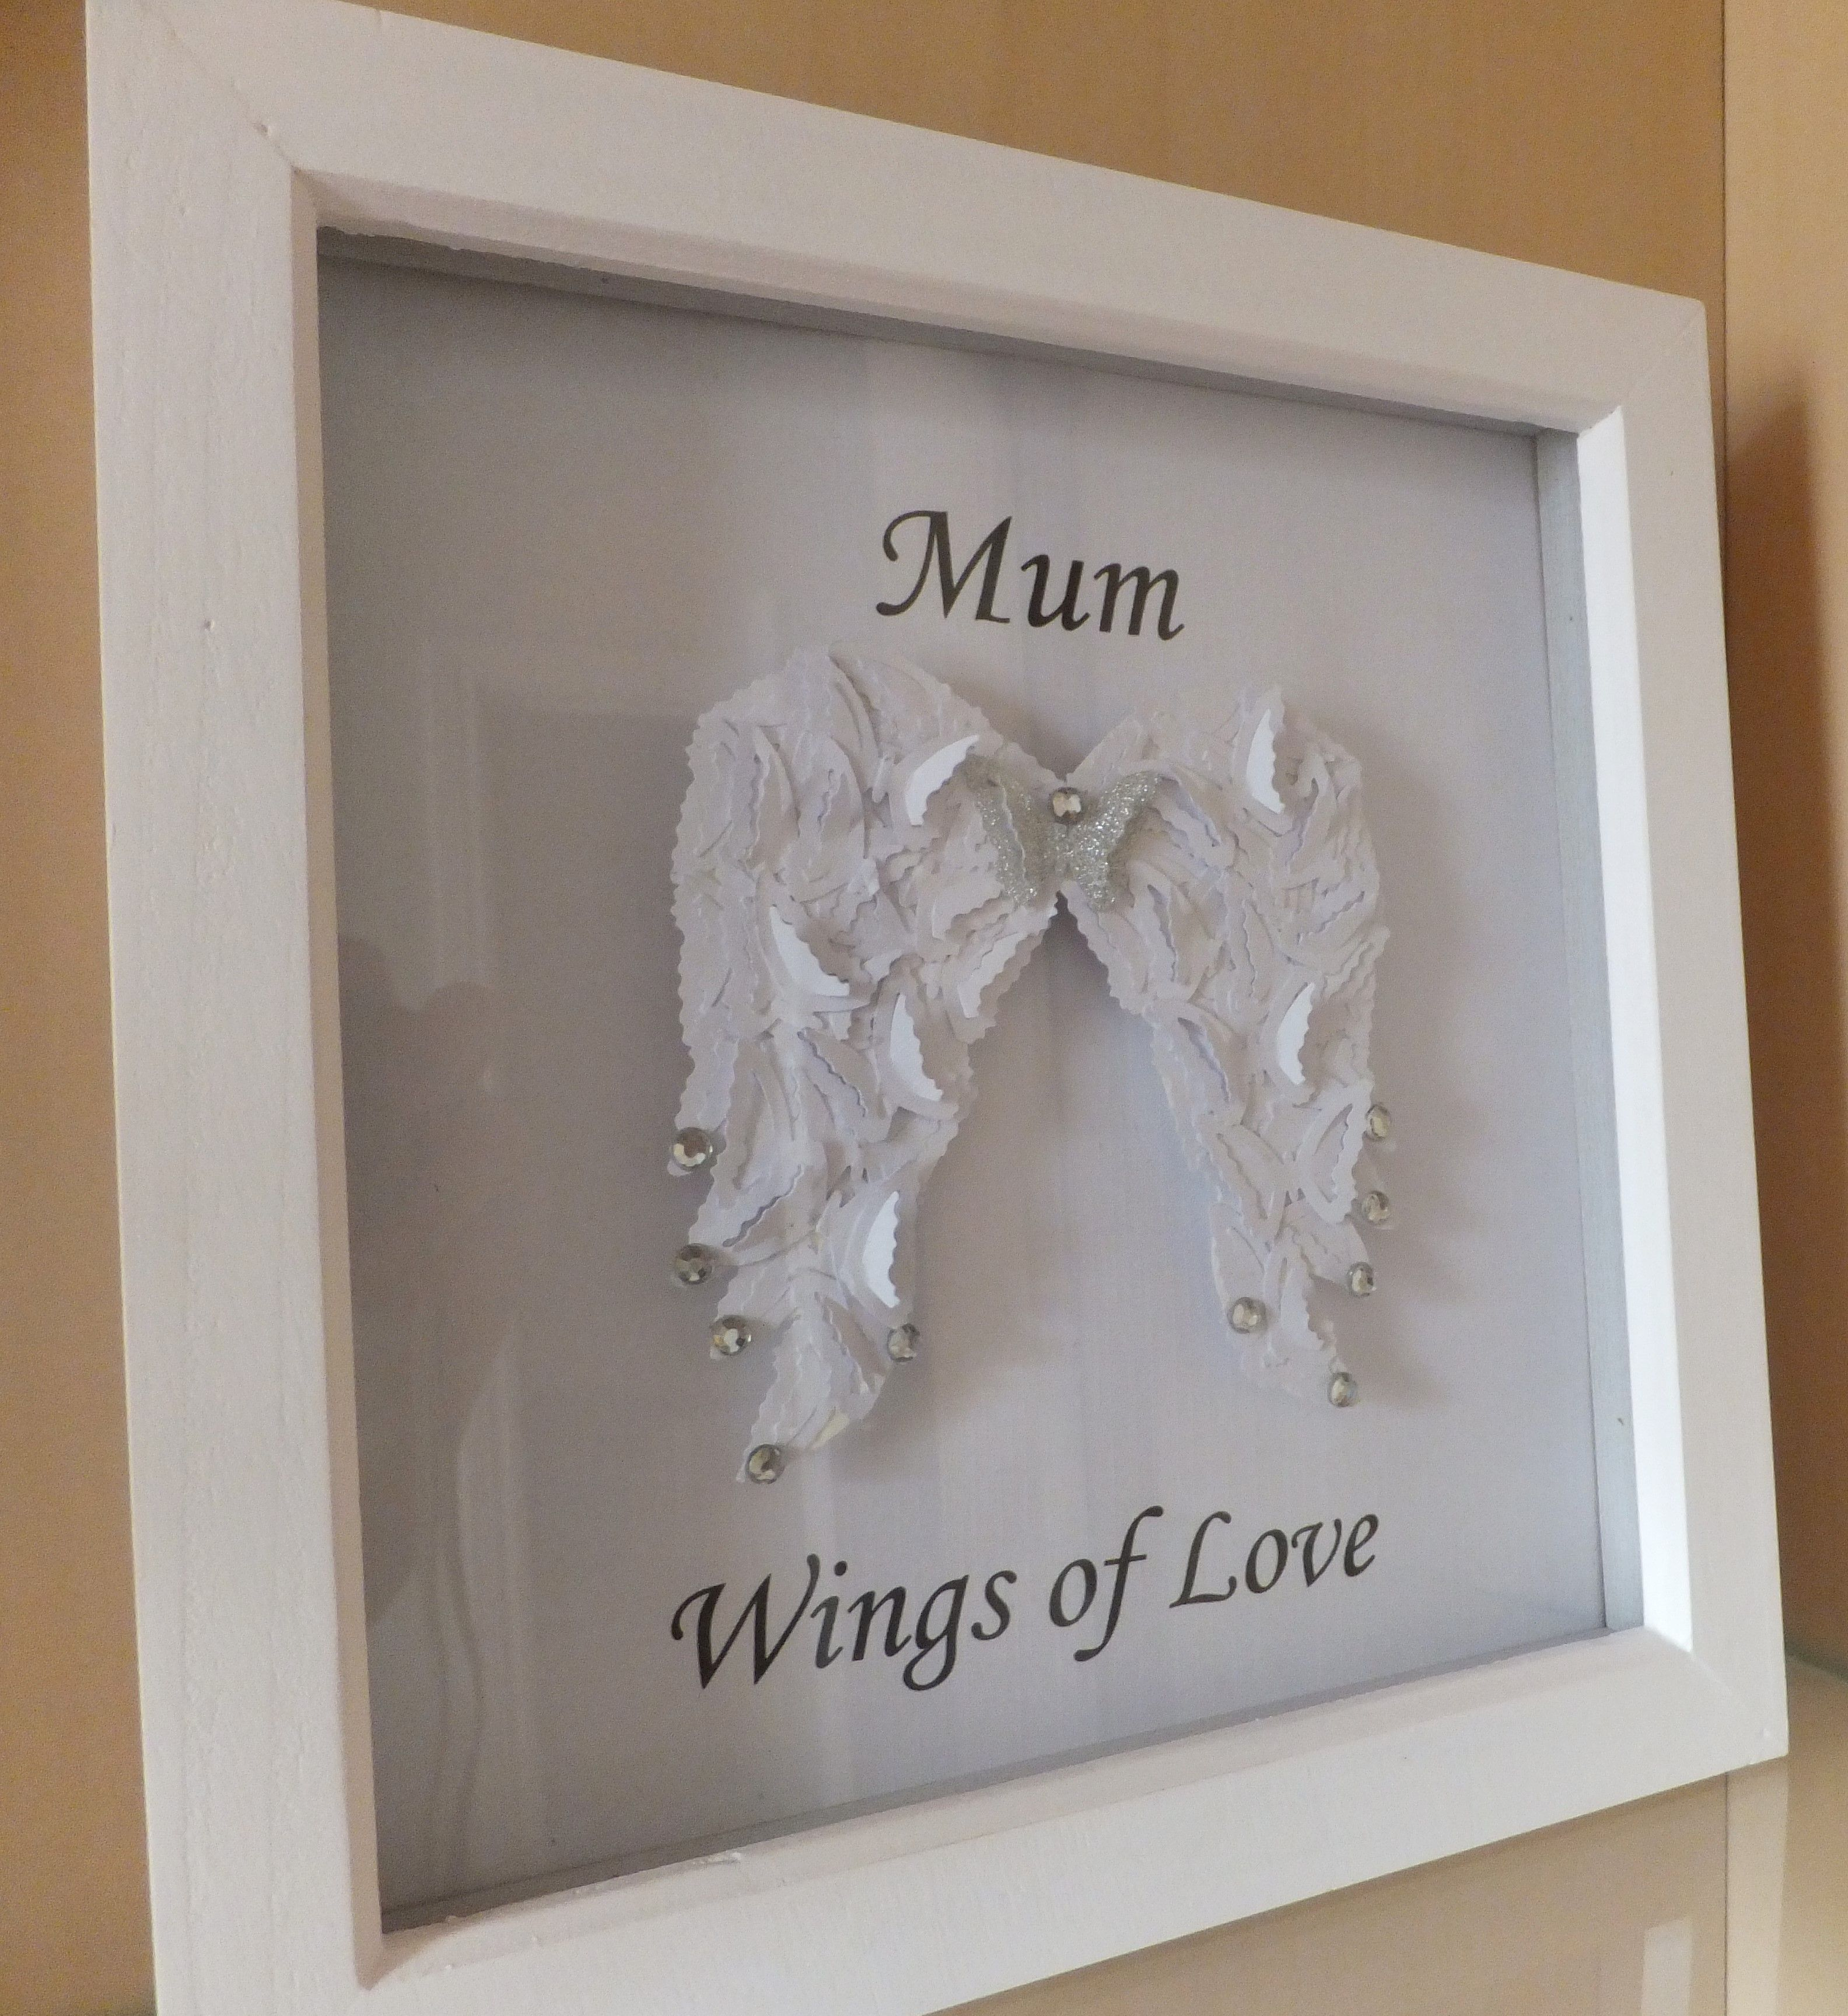 A wings of love frame created using butterflies to form angel a wings of love frame created using butterflies to form angel wings from jeuxipadfo Image collections